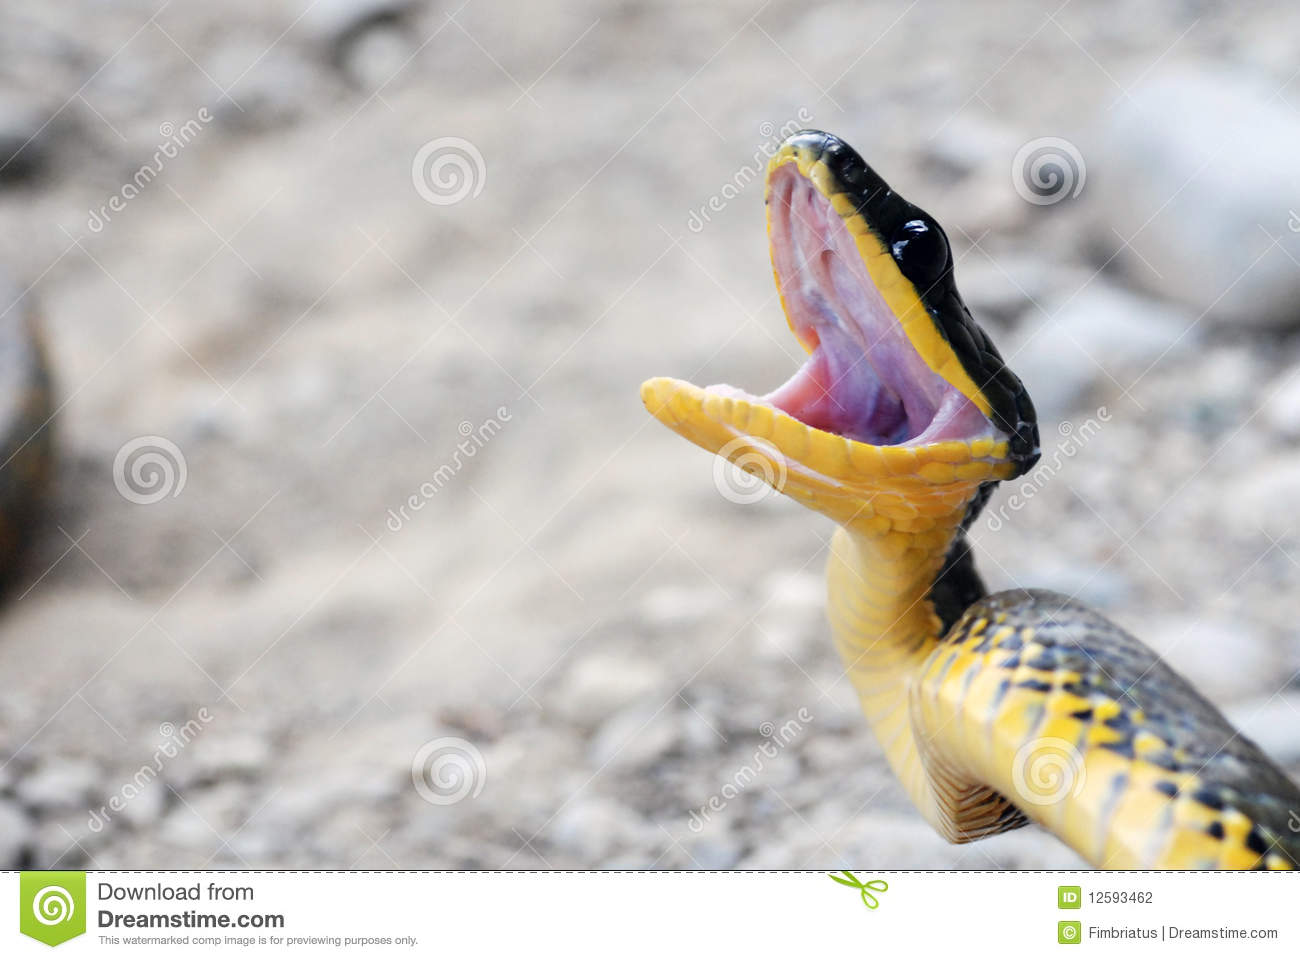 Image result for snake angry